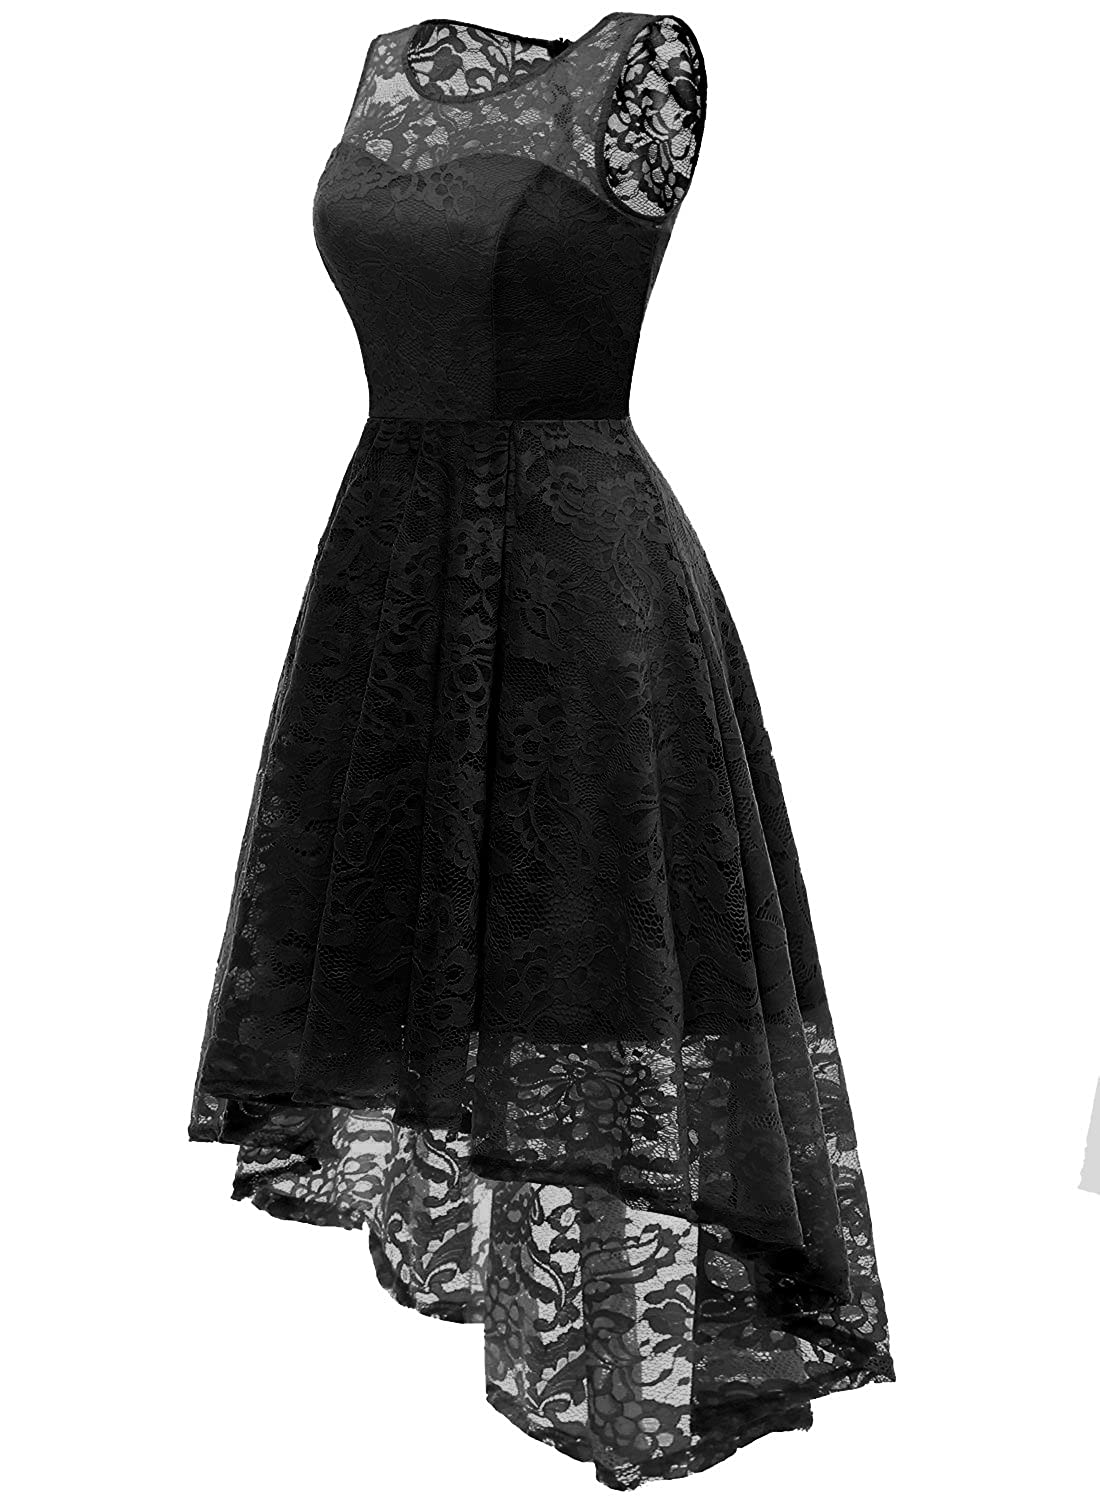 3c0e3c58f1774a MUADRESS Women s Vintage Floral Lace Sleeveless Hi-Lo Cocktail Formal Swing  Dress at Amazon Women s Clothing store